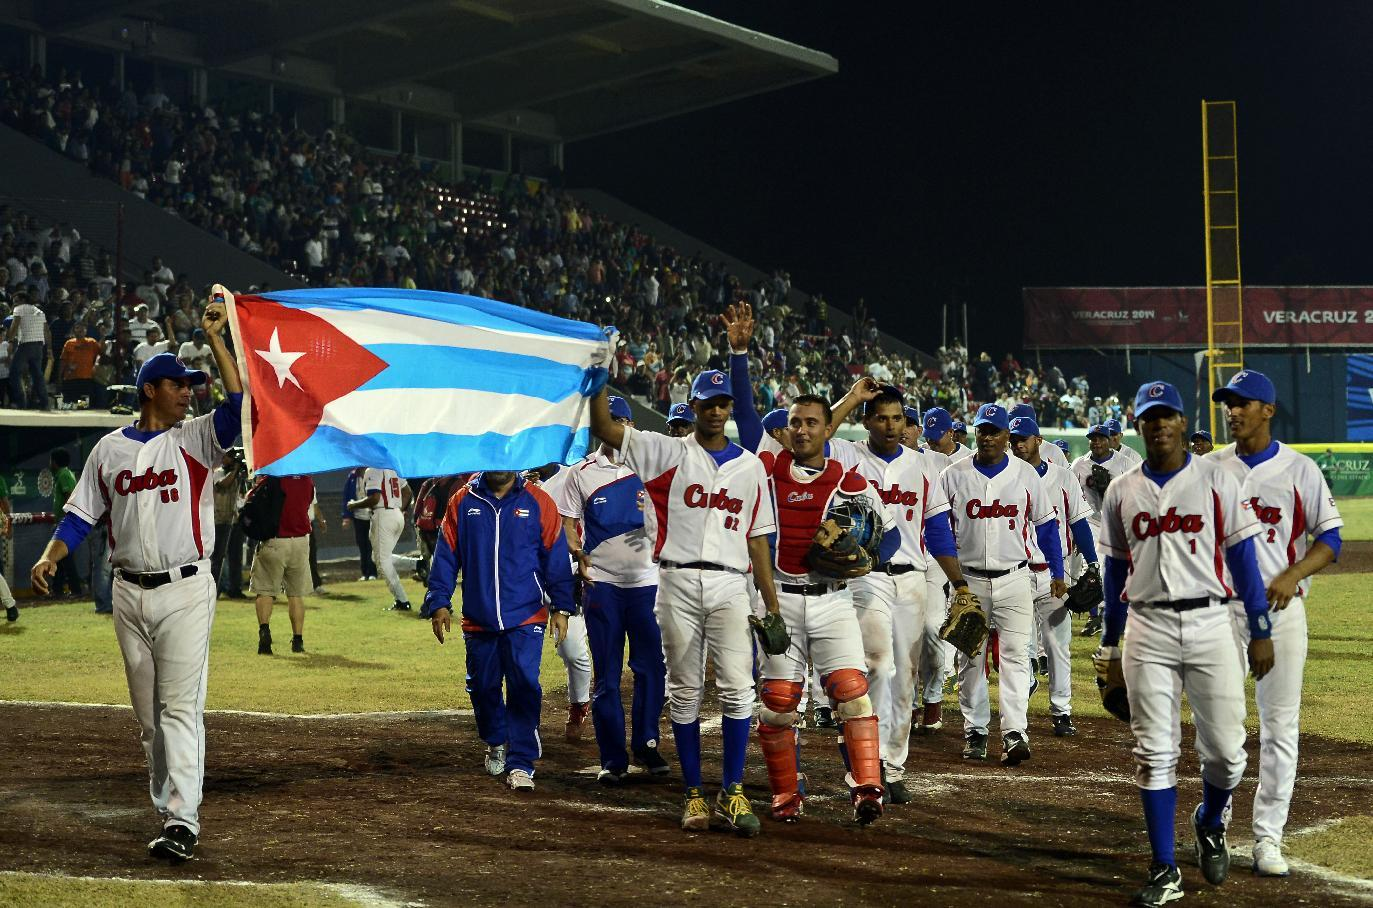 US-Cuba thaw likely to shake up baseball Major Leagues